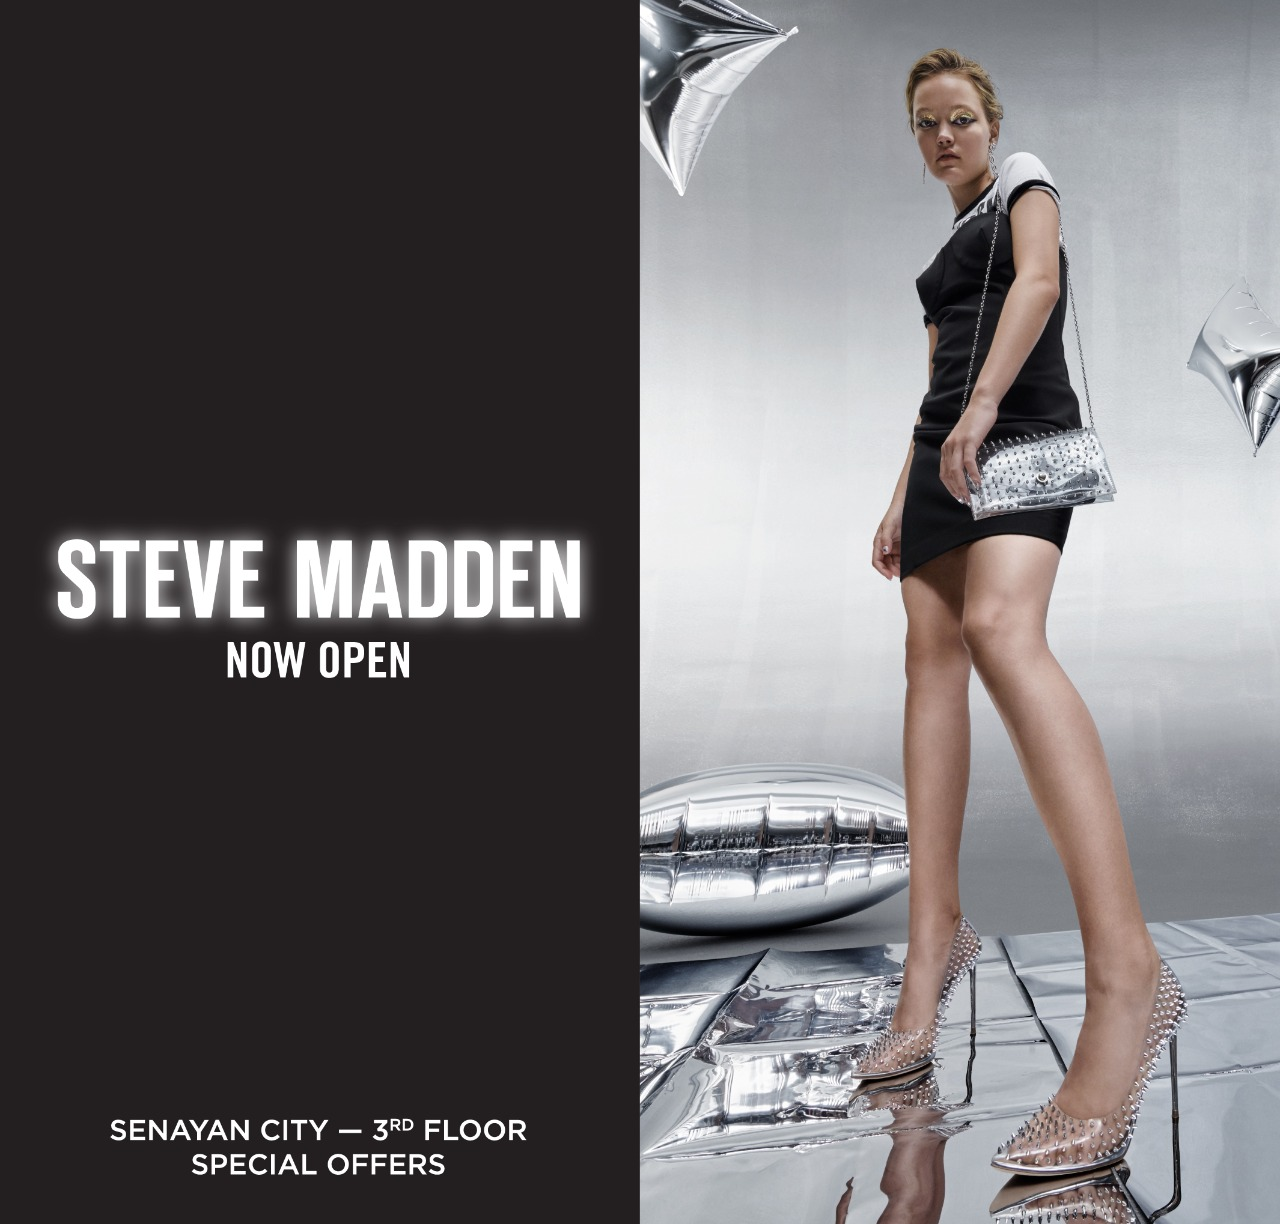 STEVE MADDEN NOW OPEN